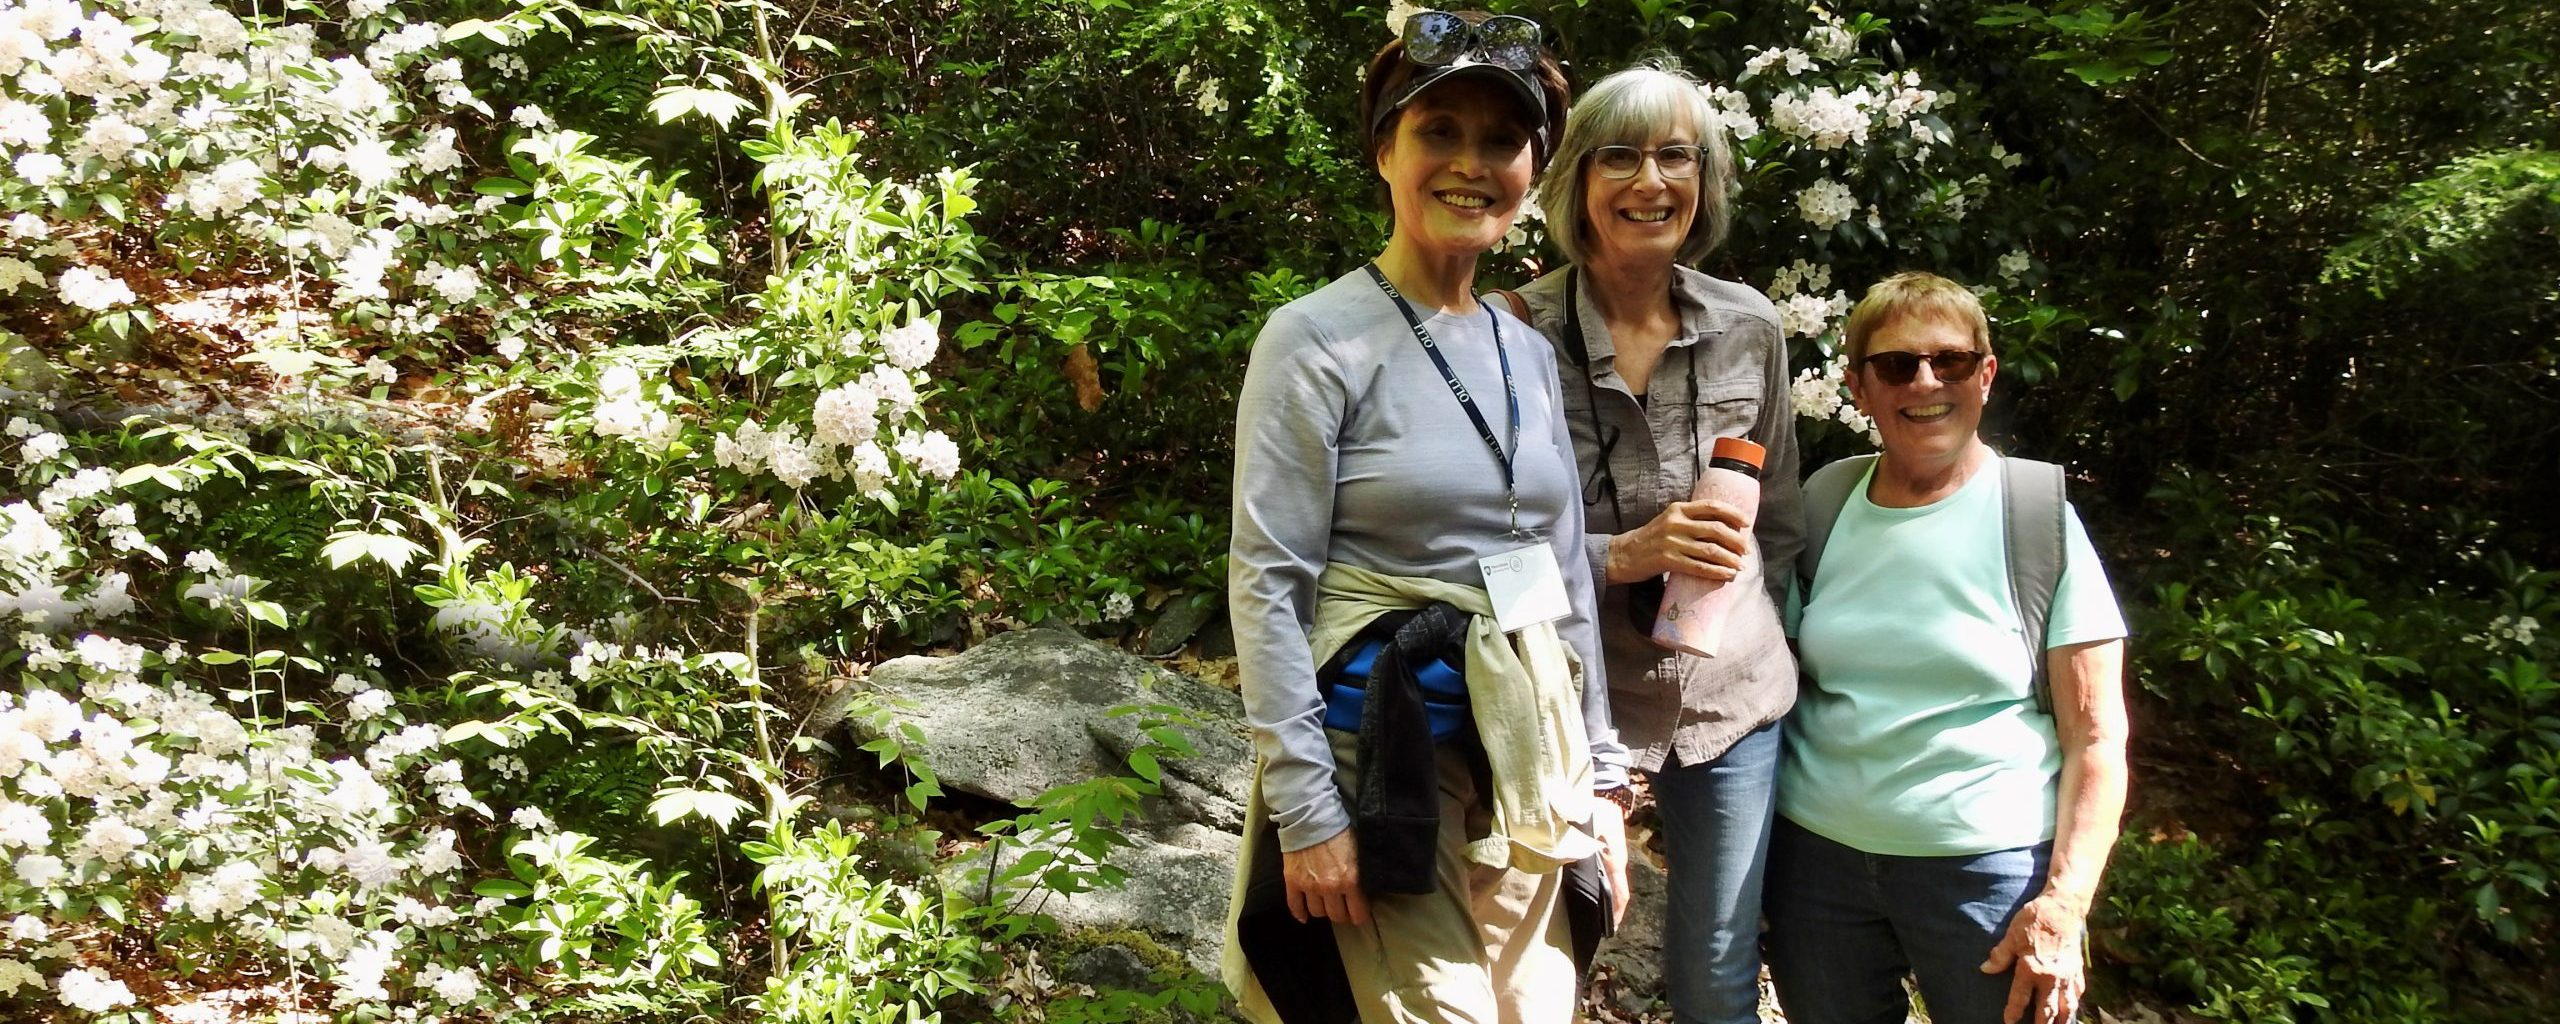 Members hiking at Black Moshannon State Park